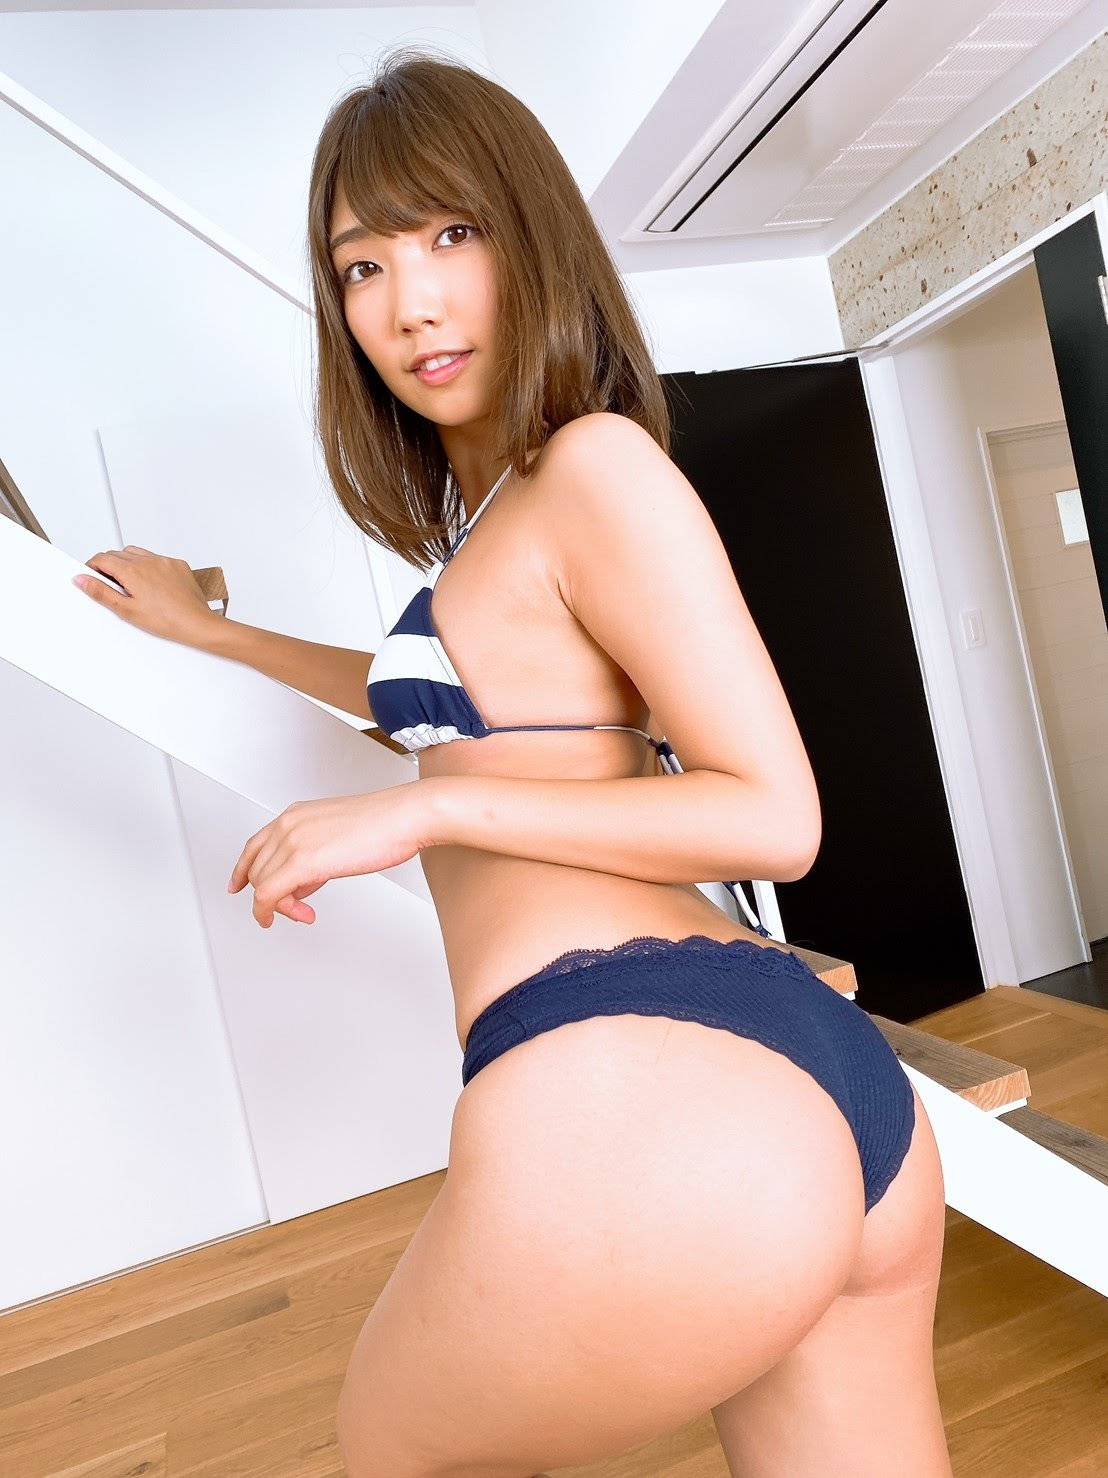 Neo Gal staying date with her Mea Shimotsuki gravure swimsuit image sheets 2020010